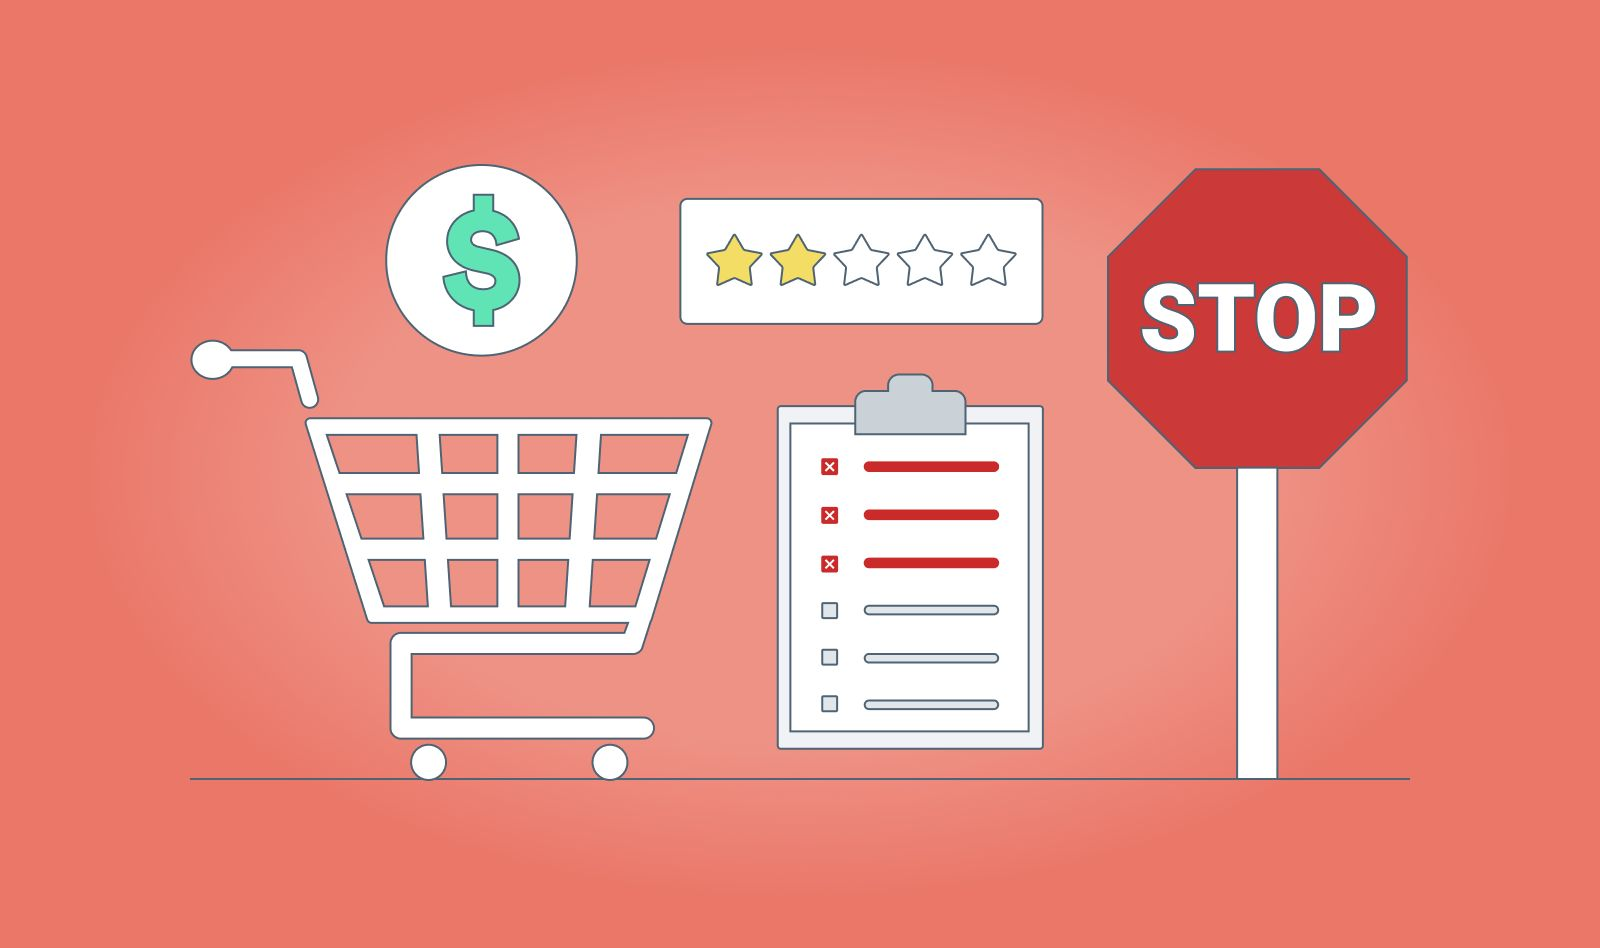 7 shopping mistakes dental practices make with illustrated icons and red background